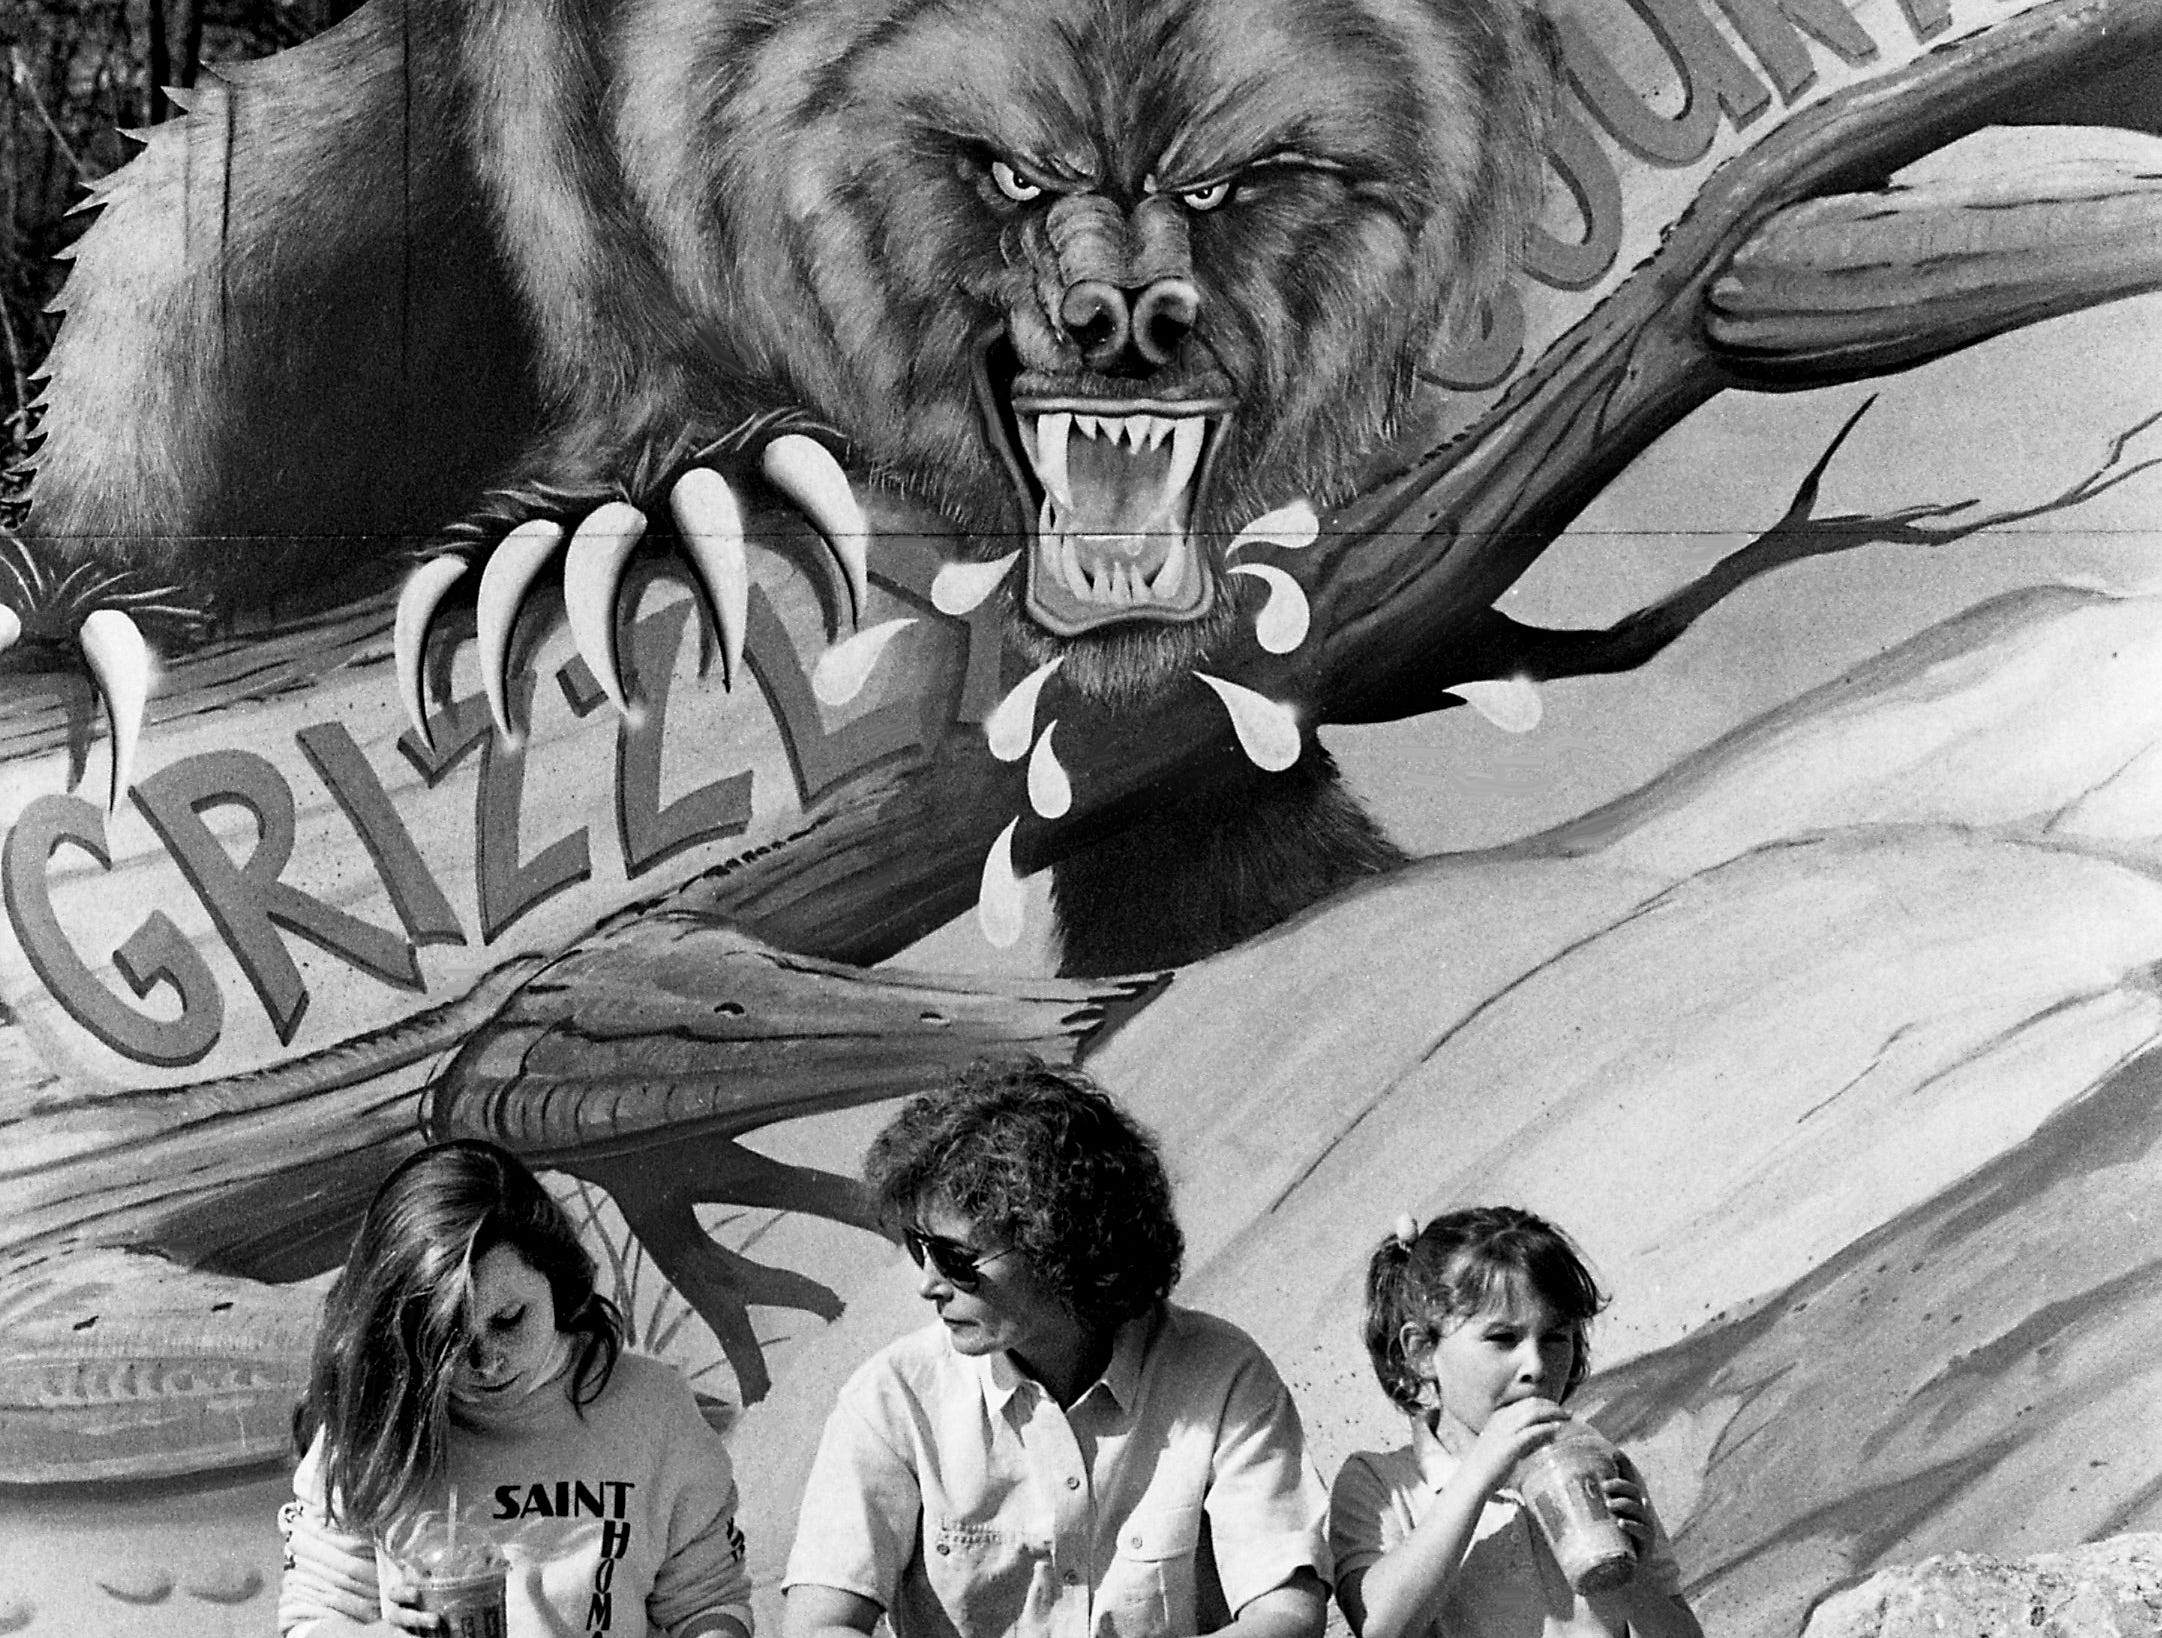 Stephanie Nadeau, center, and daughters Jessica, 12, left, and Kate, 6, of Nashville, enjoy a break during their visit to opening day of the 18th season of the Opryland U.S.A. theme park on March 25, 1989, while the painted grizzly behind them looks like he wants a snack also.